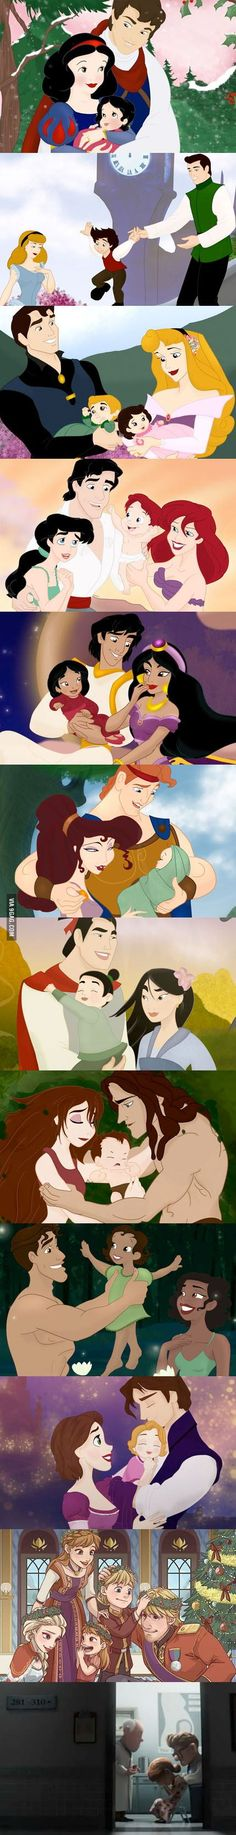 heartbreaking  disney princesses. the last one just kills me